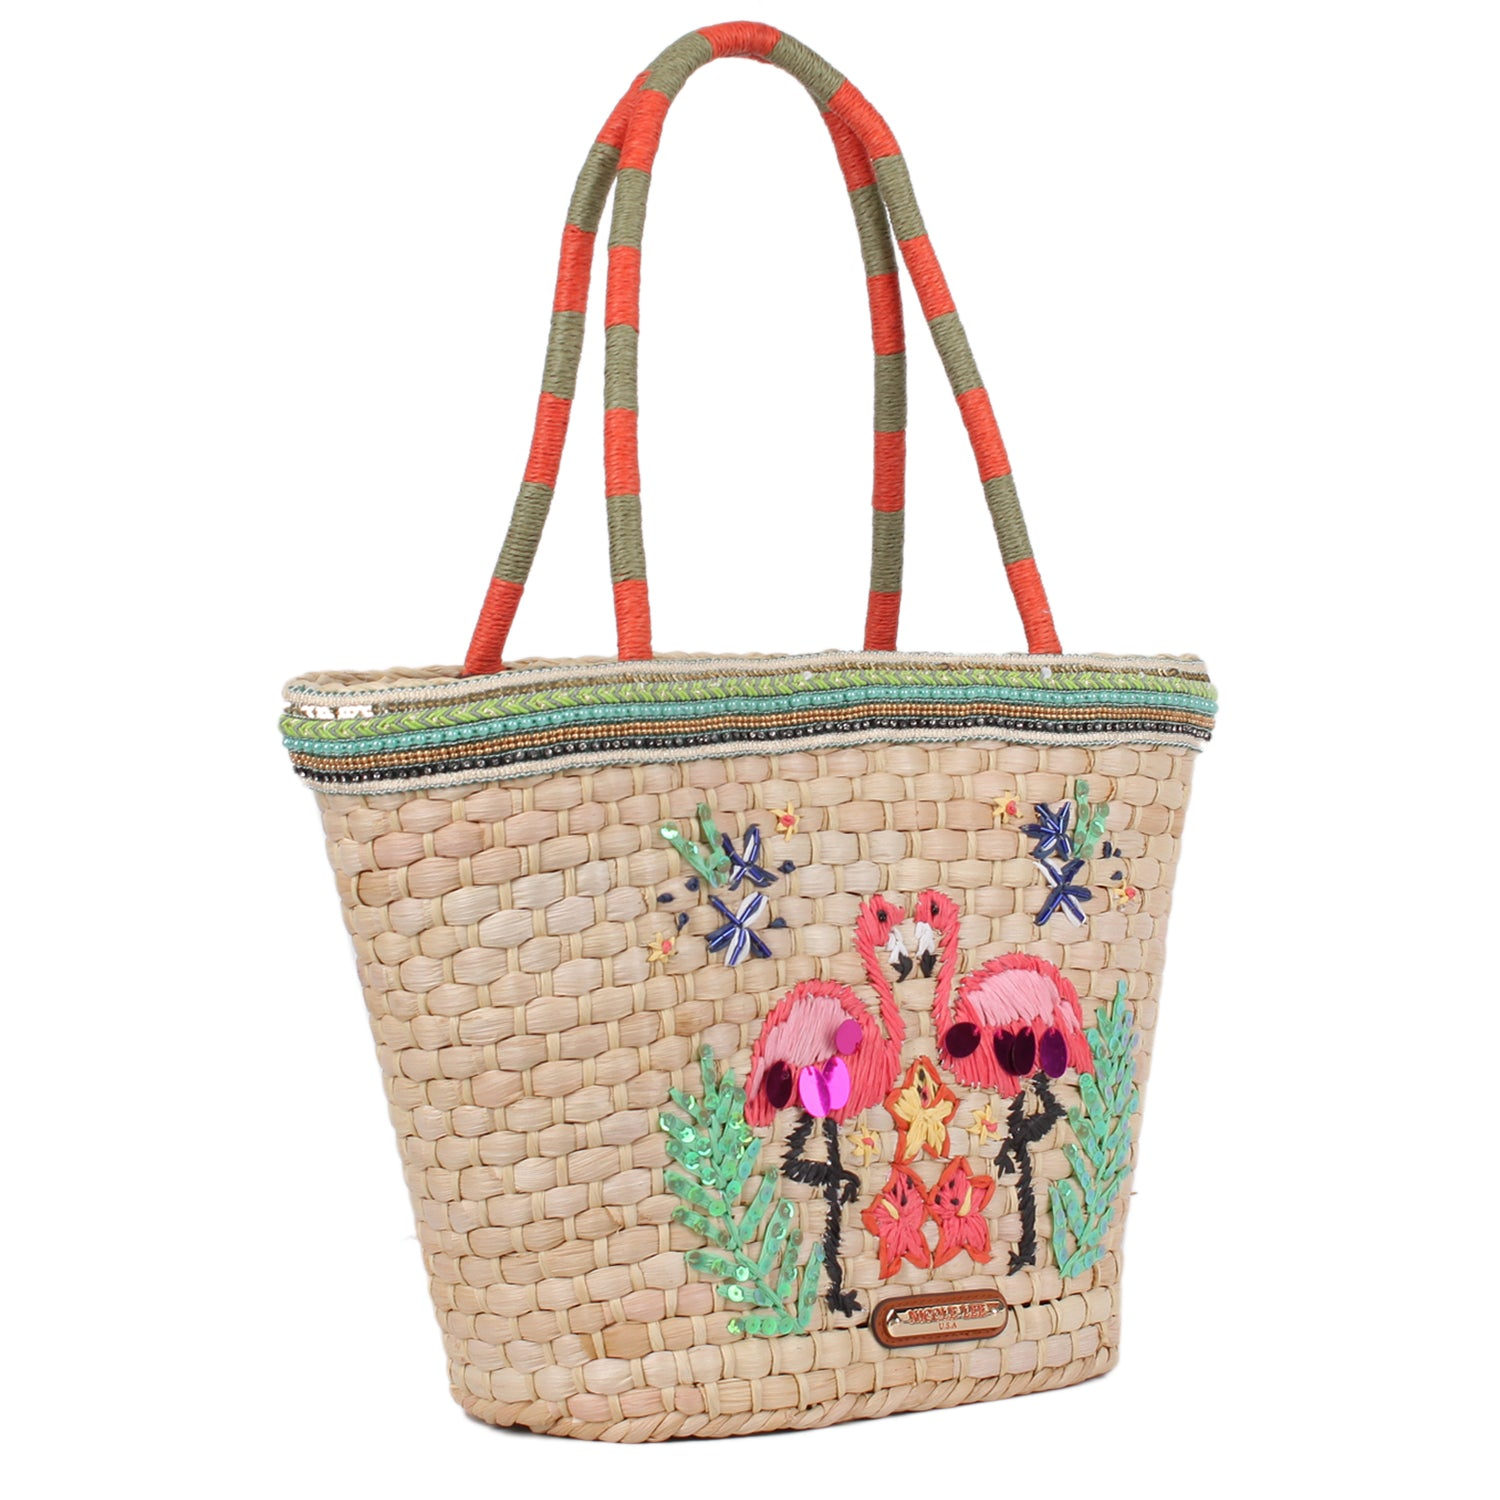 NATAYLA FLAMINGO STRAW SHOPPER BAG